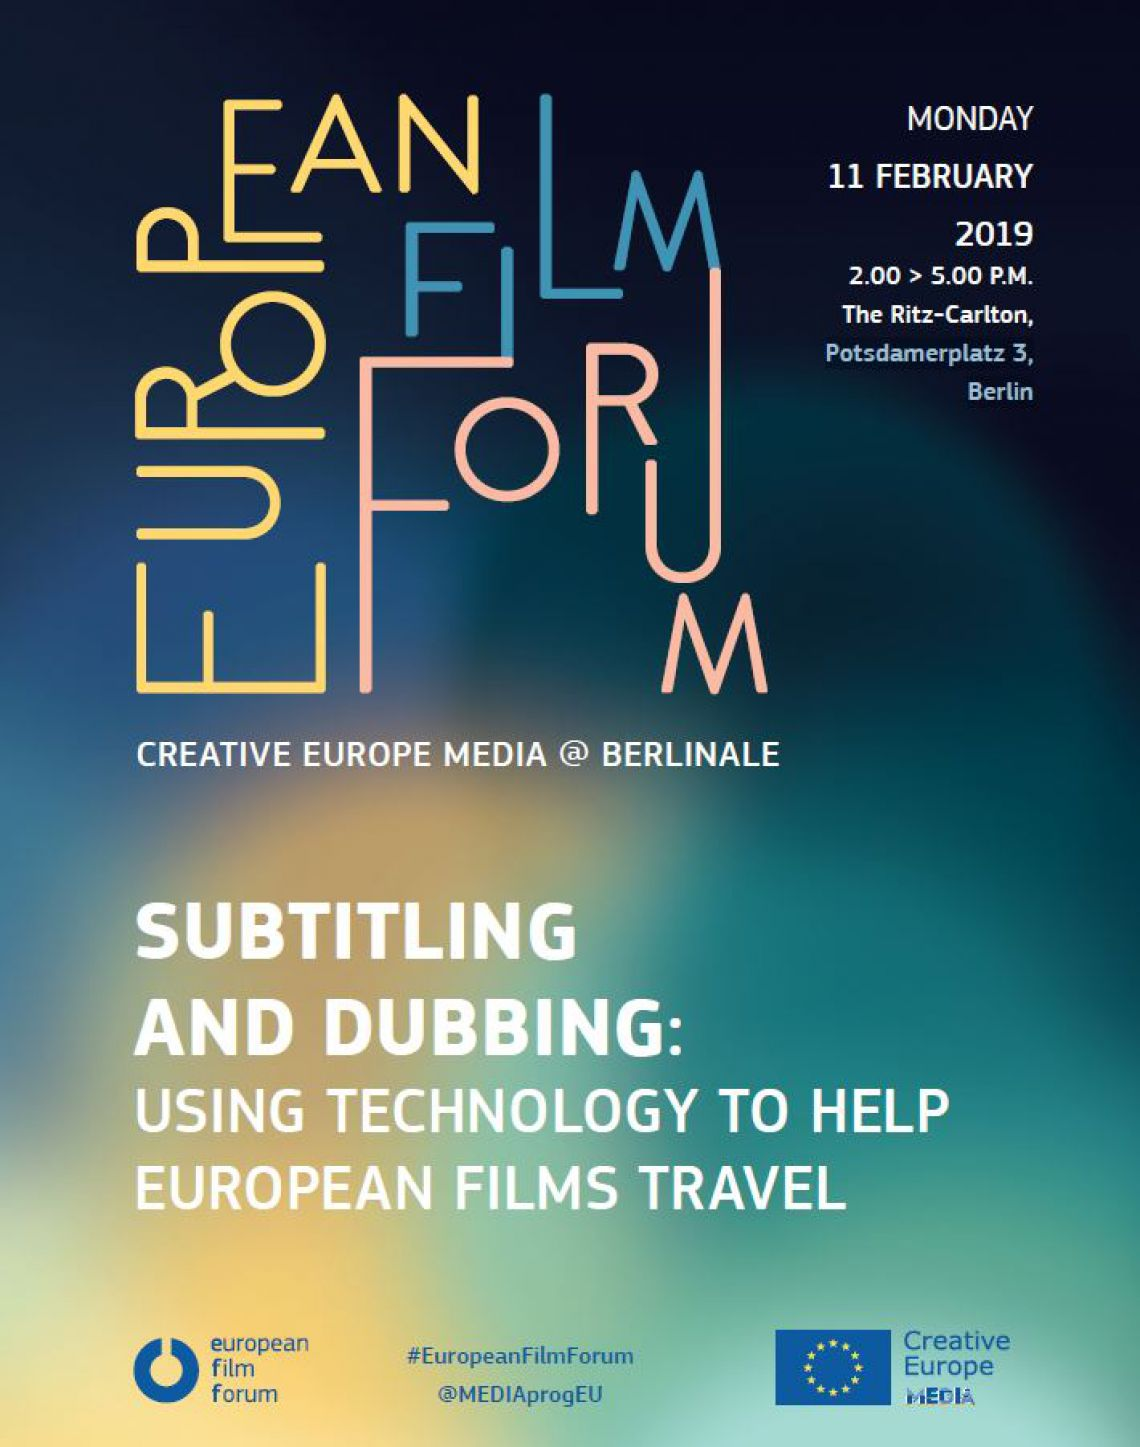 The European Film Forum 2019 starts during the Berlinare